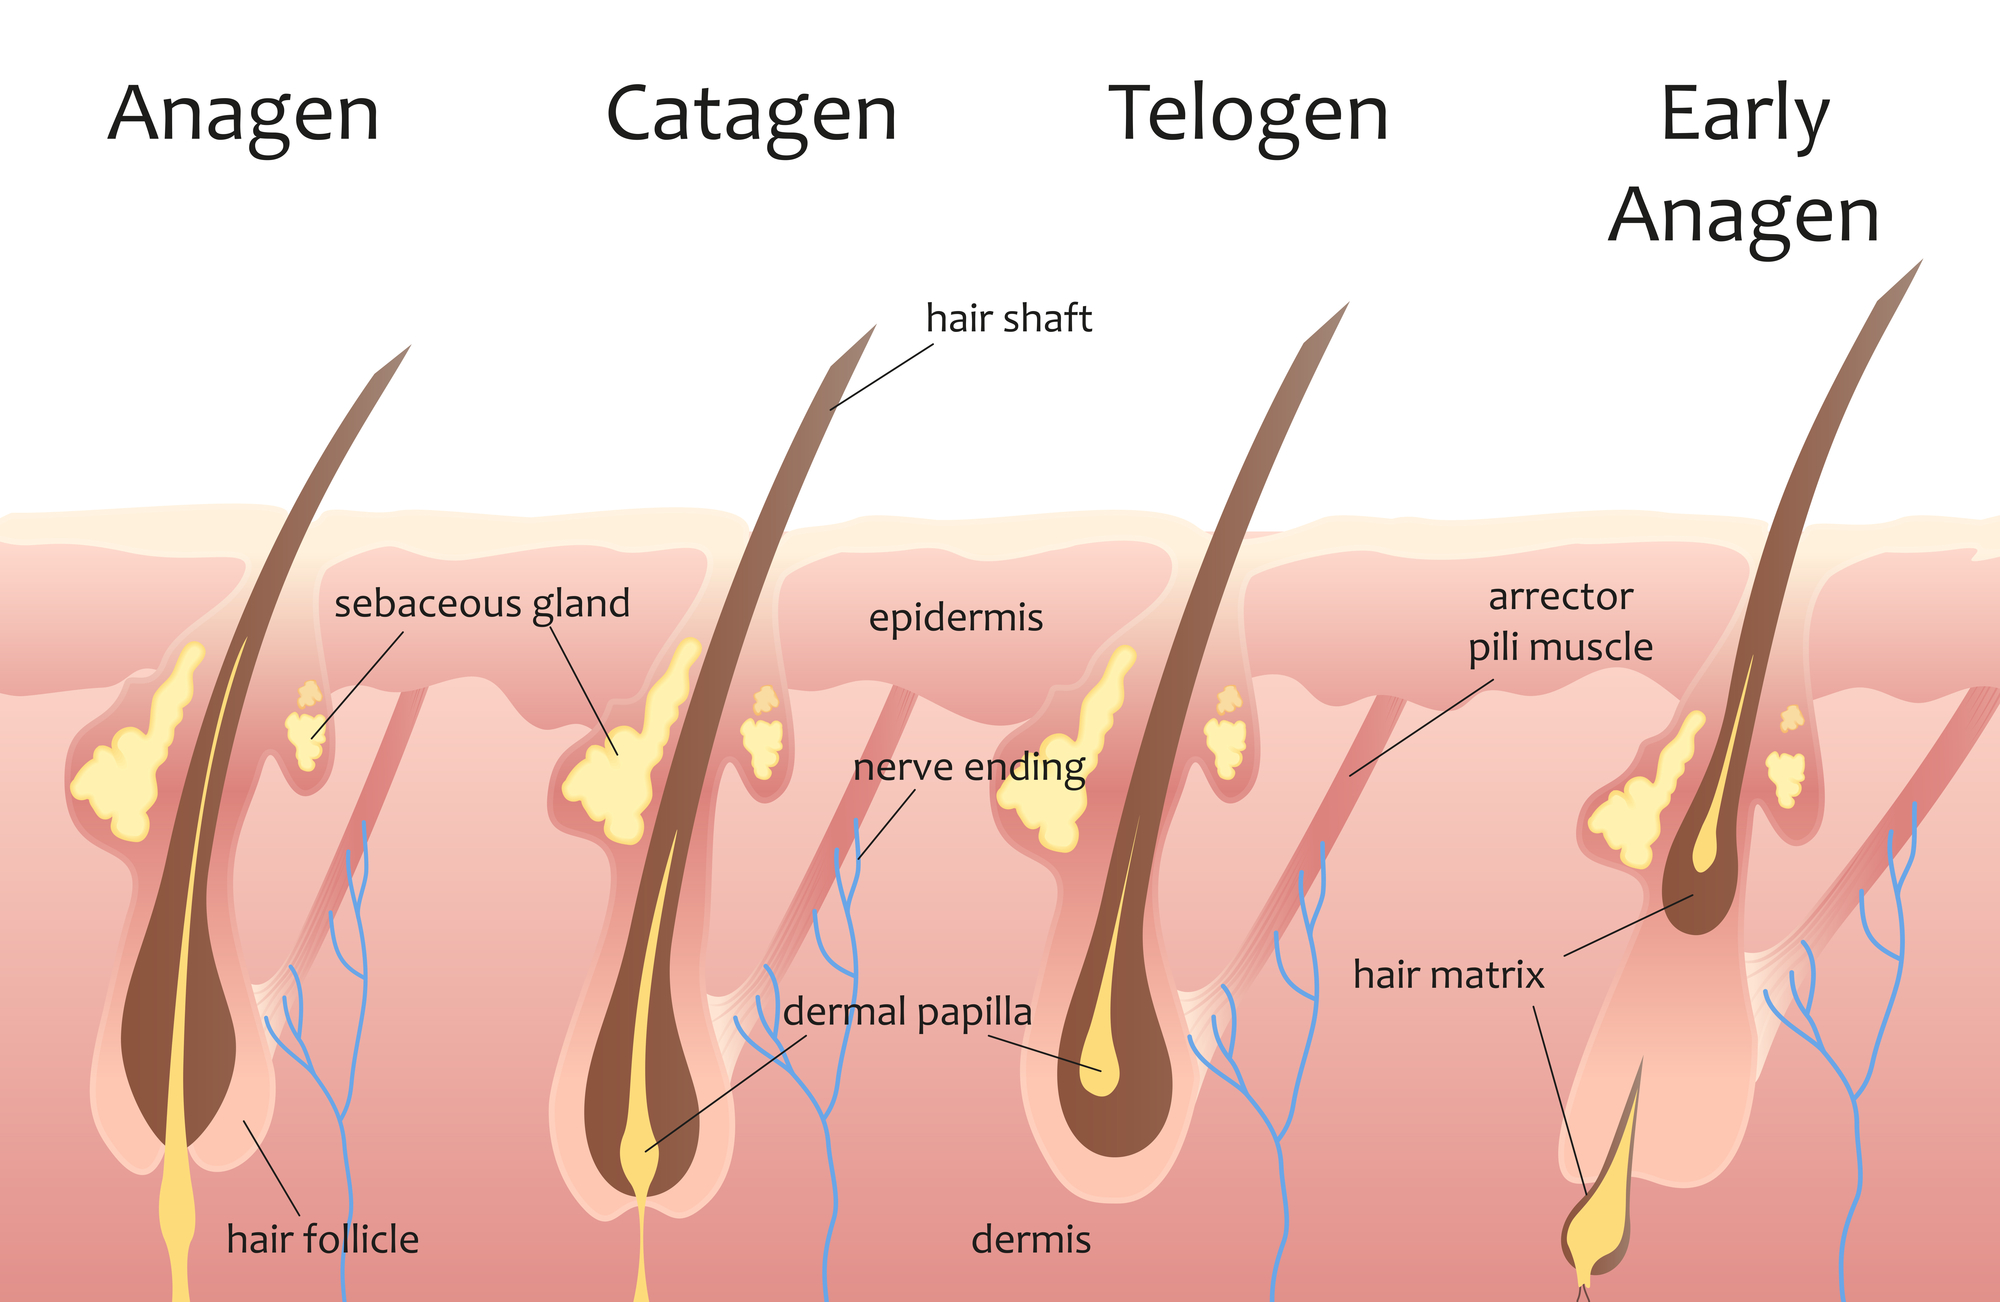 How Do You Stop Hair Loss Naturally